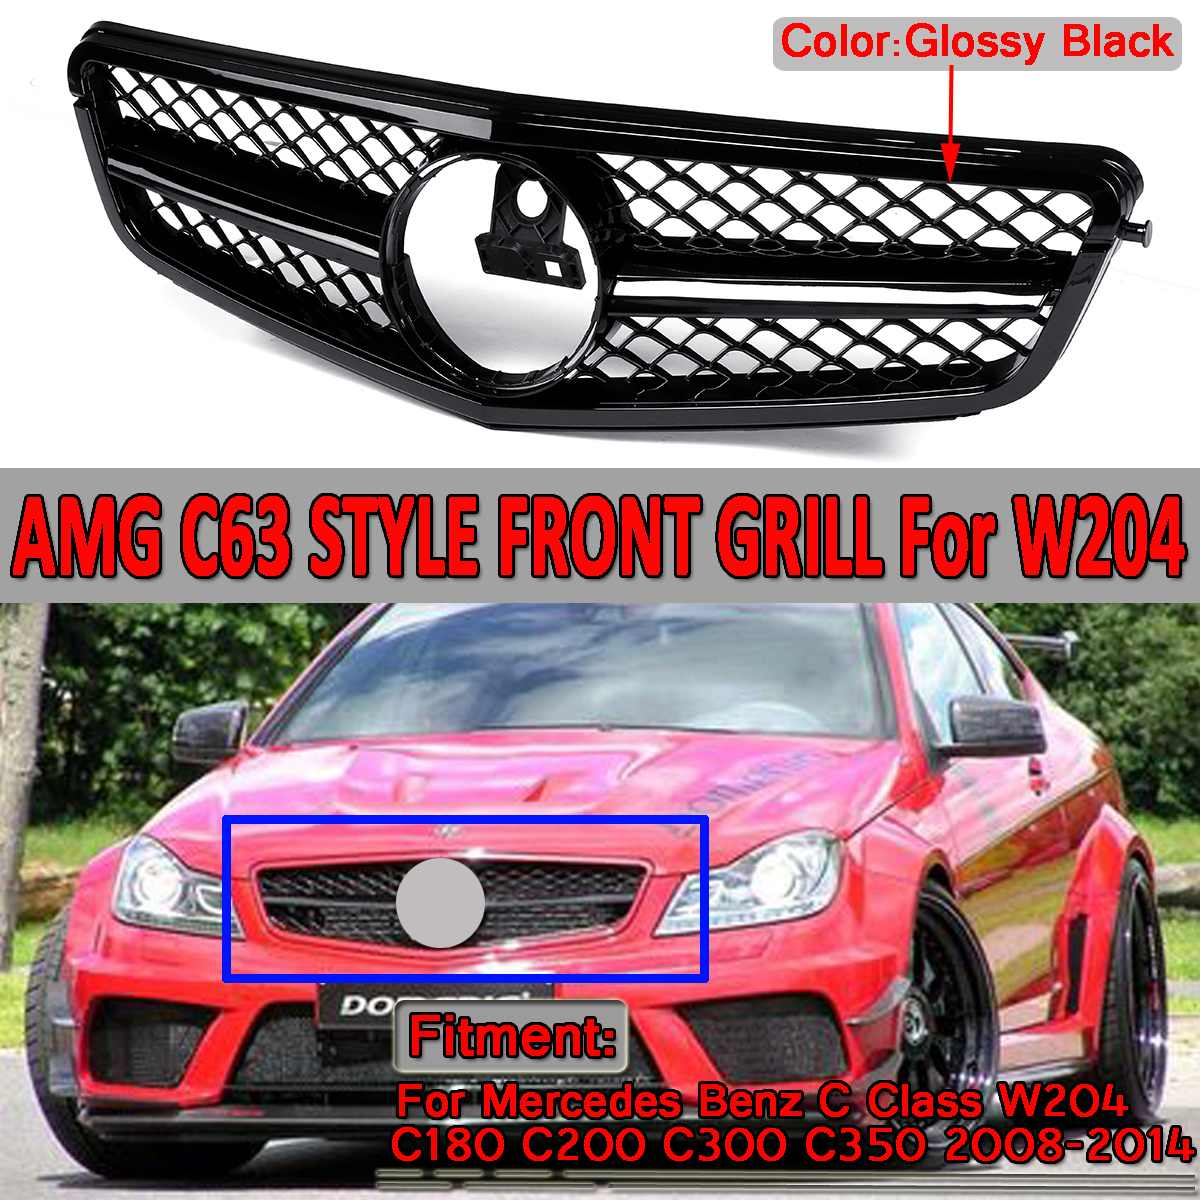 <font><b>W204</b></font> C63 <font><b>Grill</b></font> Car Front Upper Grille <font><b>Grill</b></font> For Mercedes For <font><b>Benz</b></font> C Class <font><b>W204</b></font> C180 C200 C300 C350 2008-2014 For AMG C63 Style image